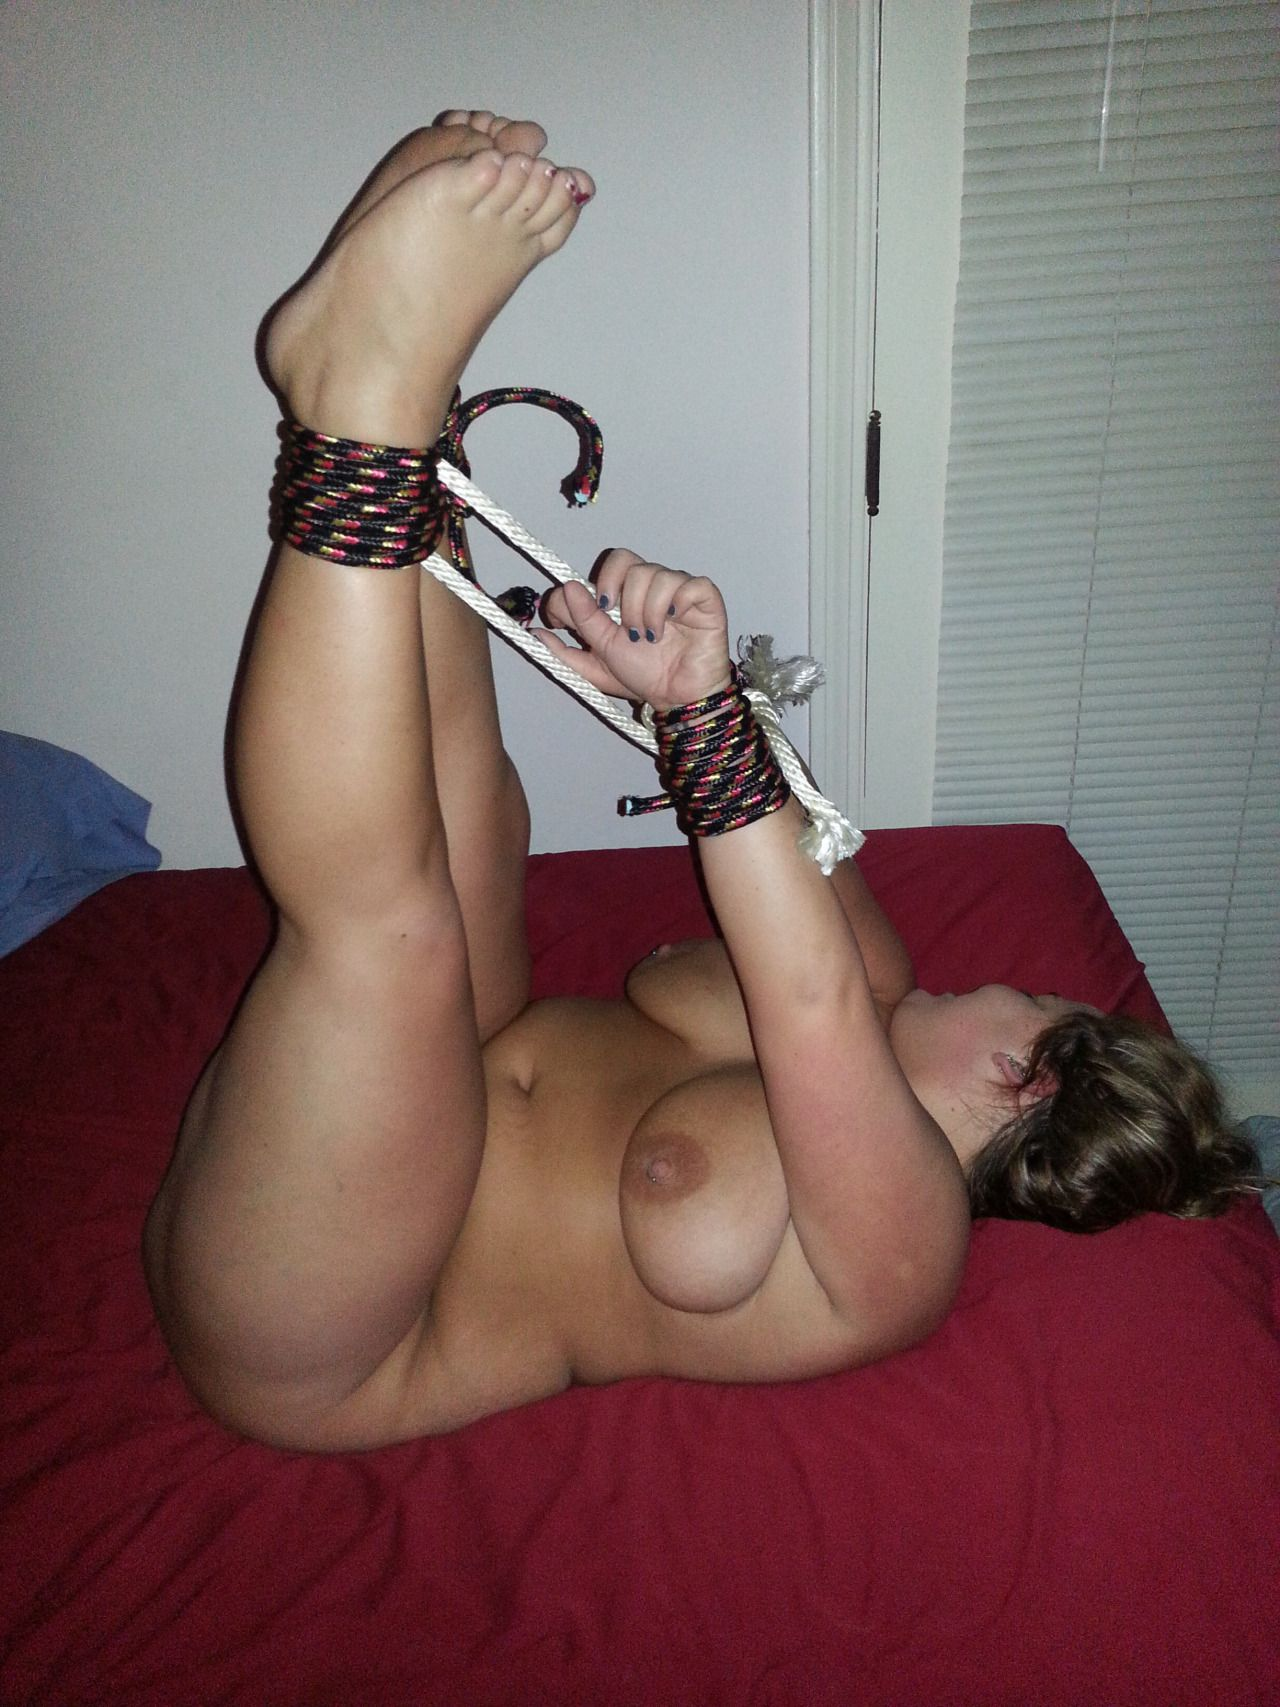 Bend over and lick